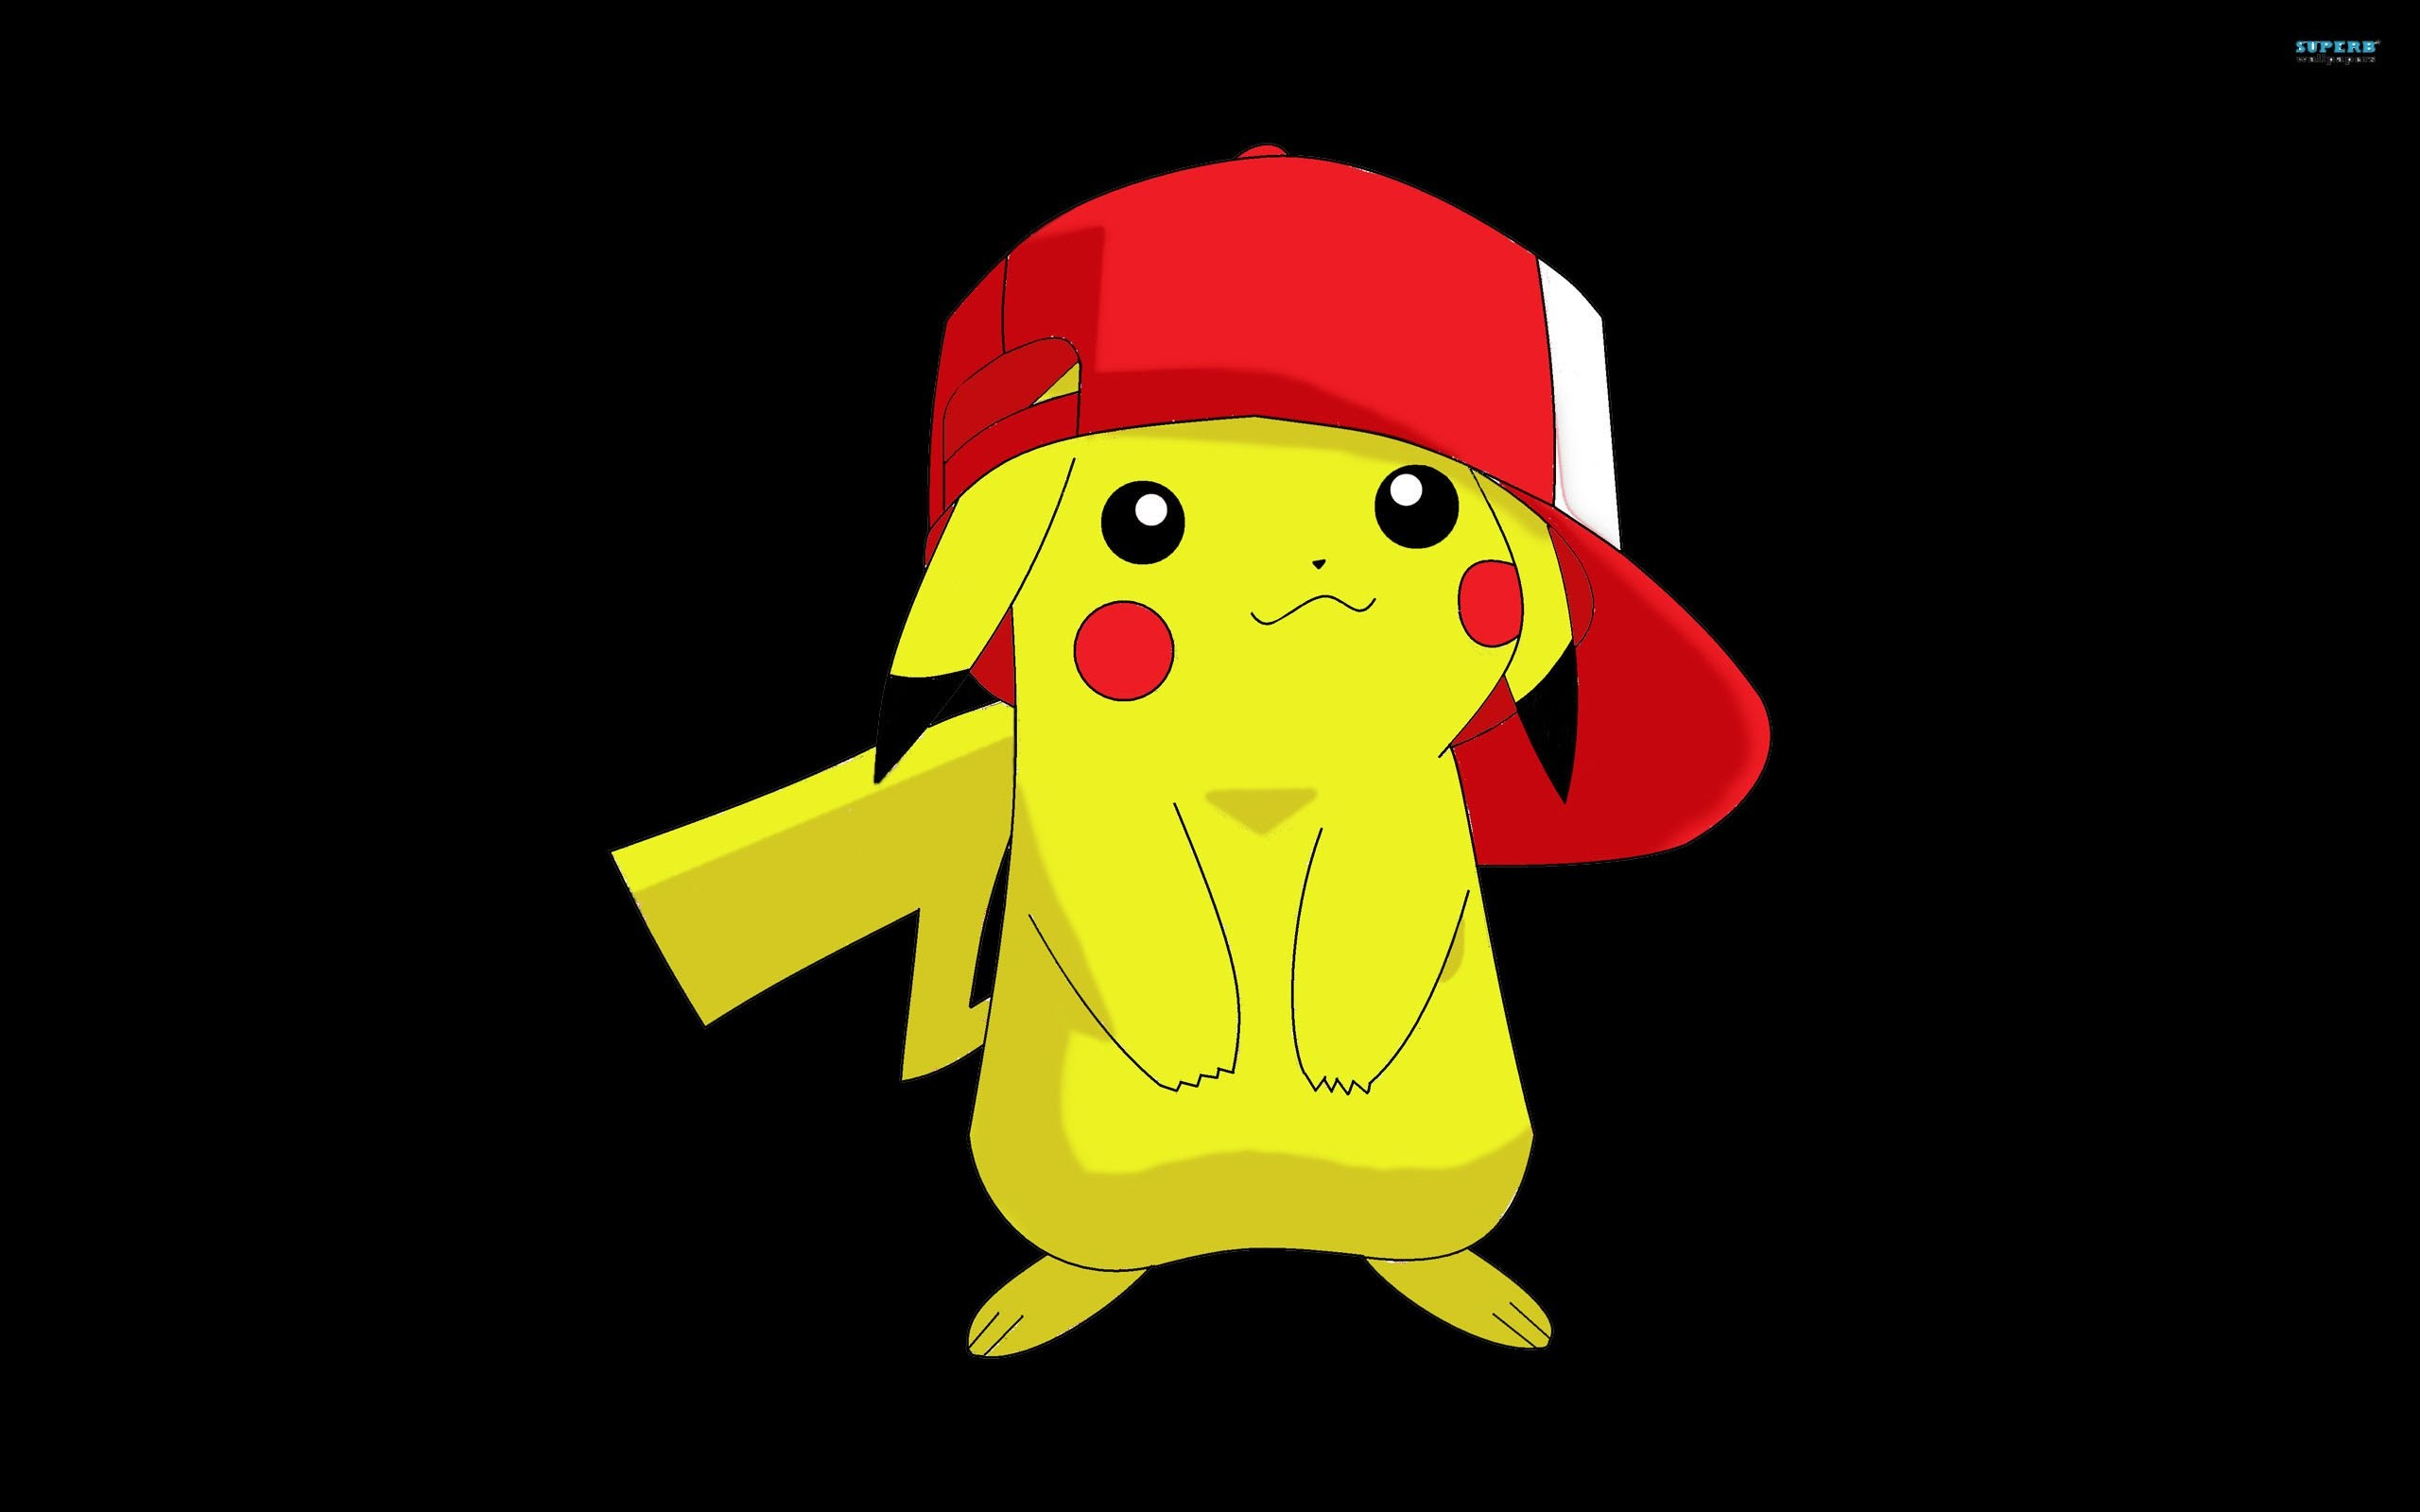 Cute pikachu wallpapers 76 background pictures - Image pikachu ...